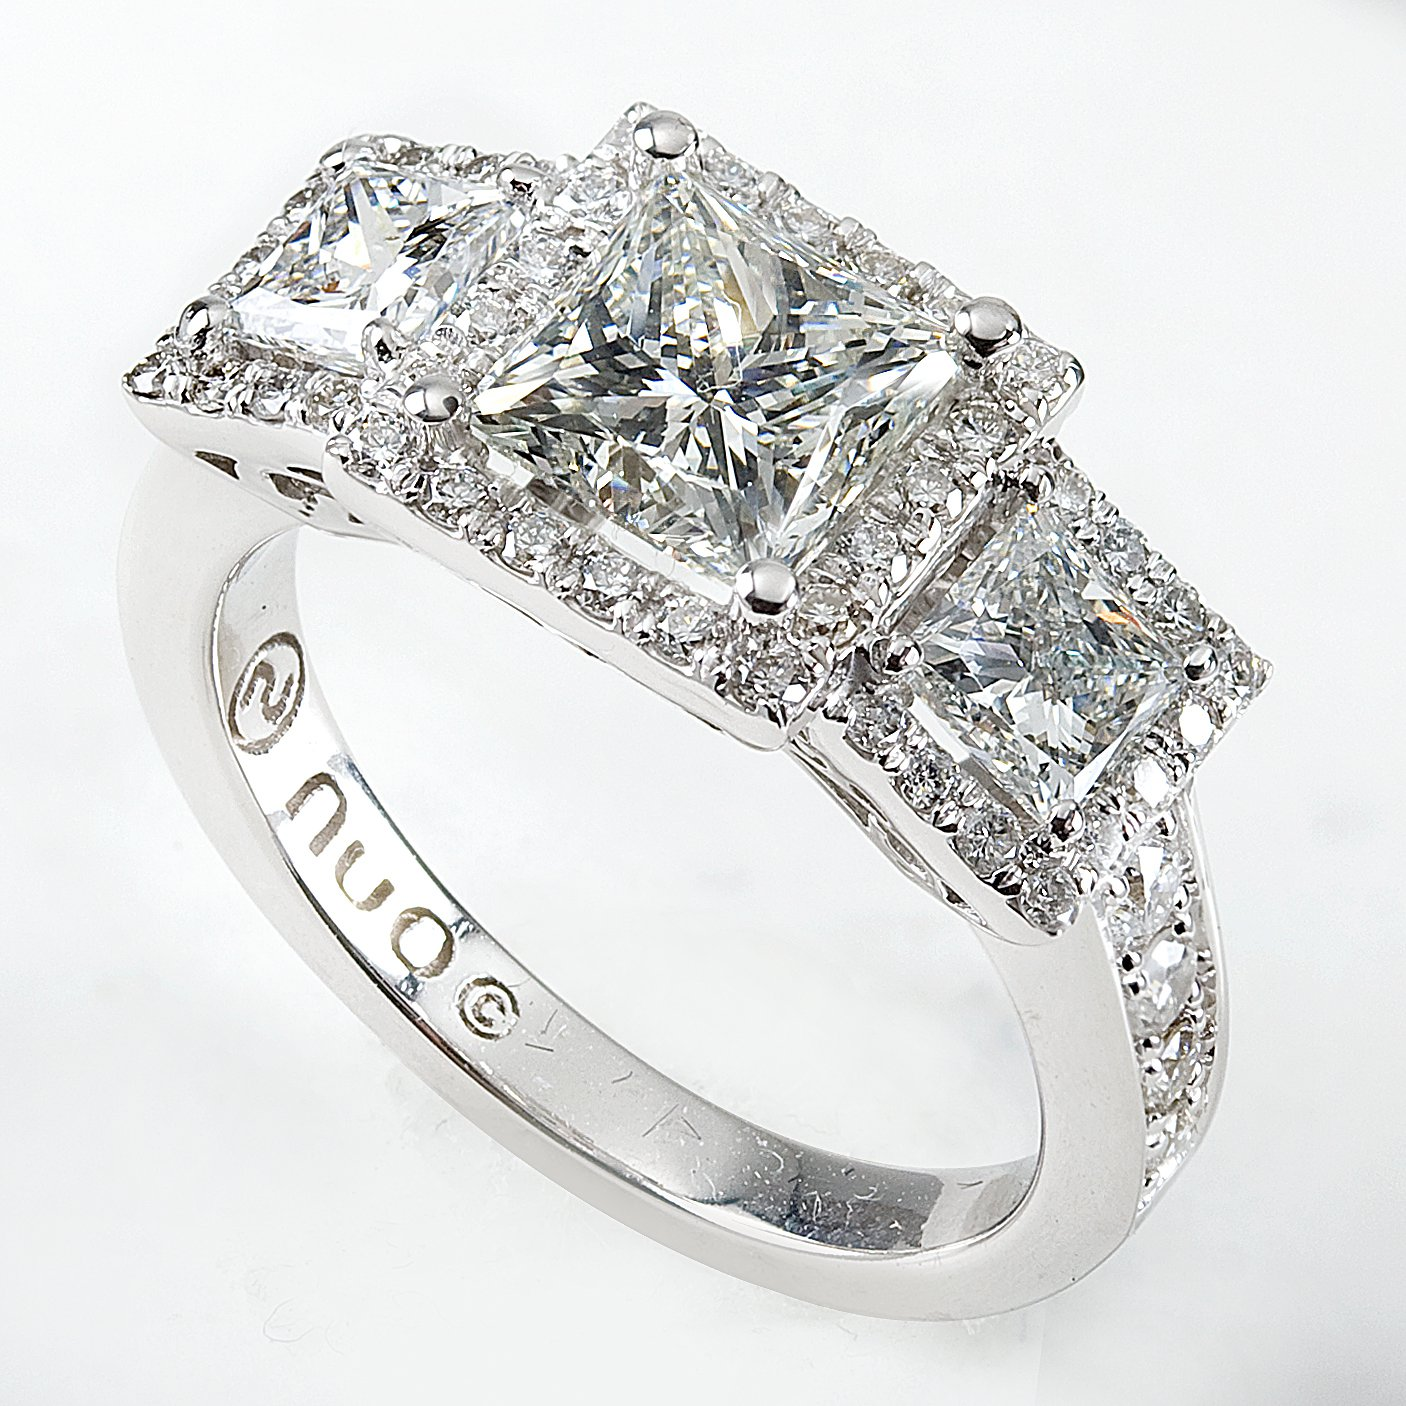 jewelry carat diamondland gorgeous ring engagement bestsellers rings diamond